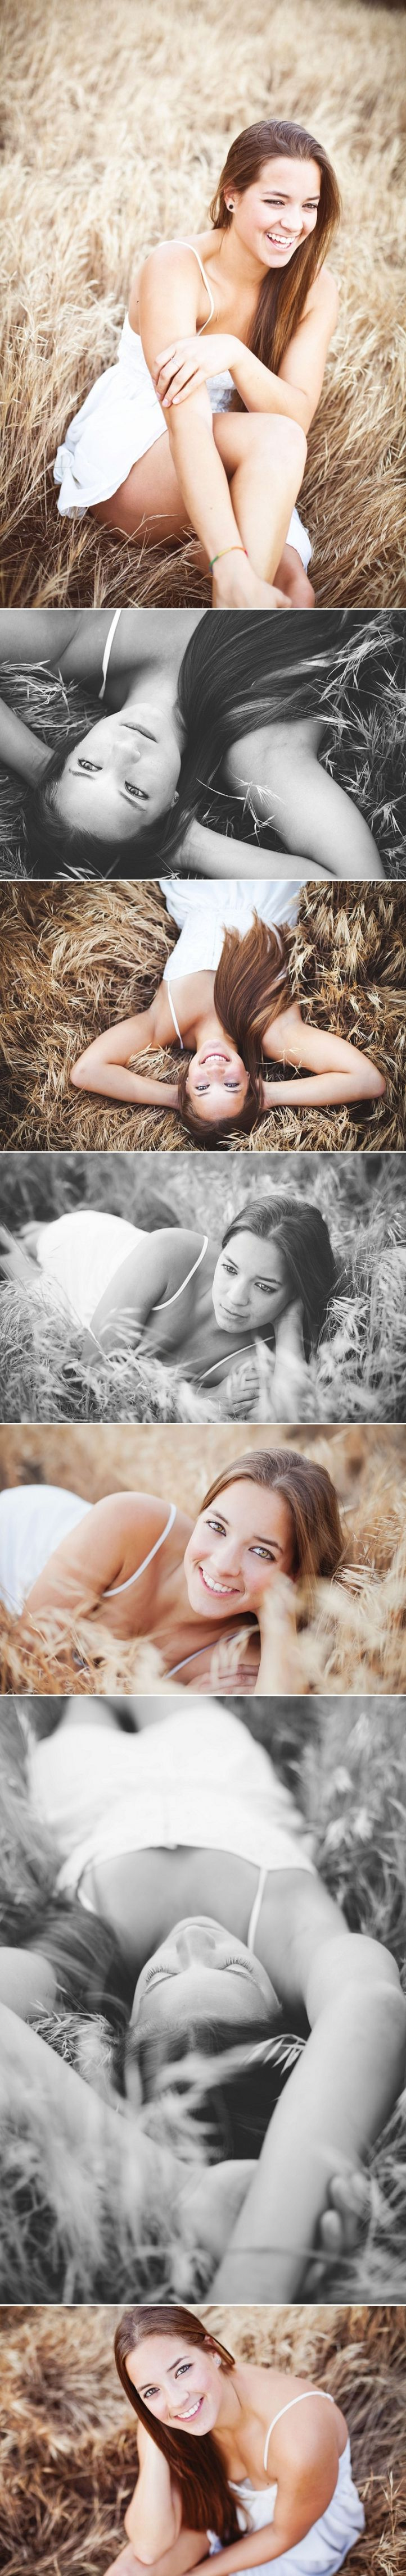 Erica Houck Photography senior portrait shoot photoshoot session field laying down poses